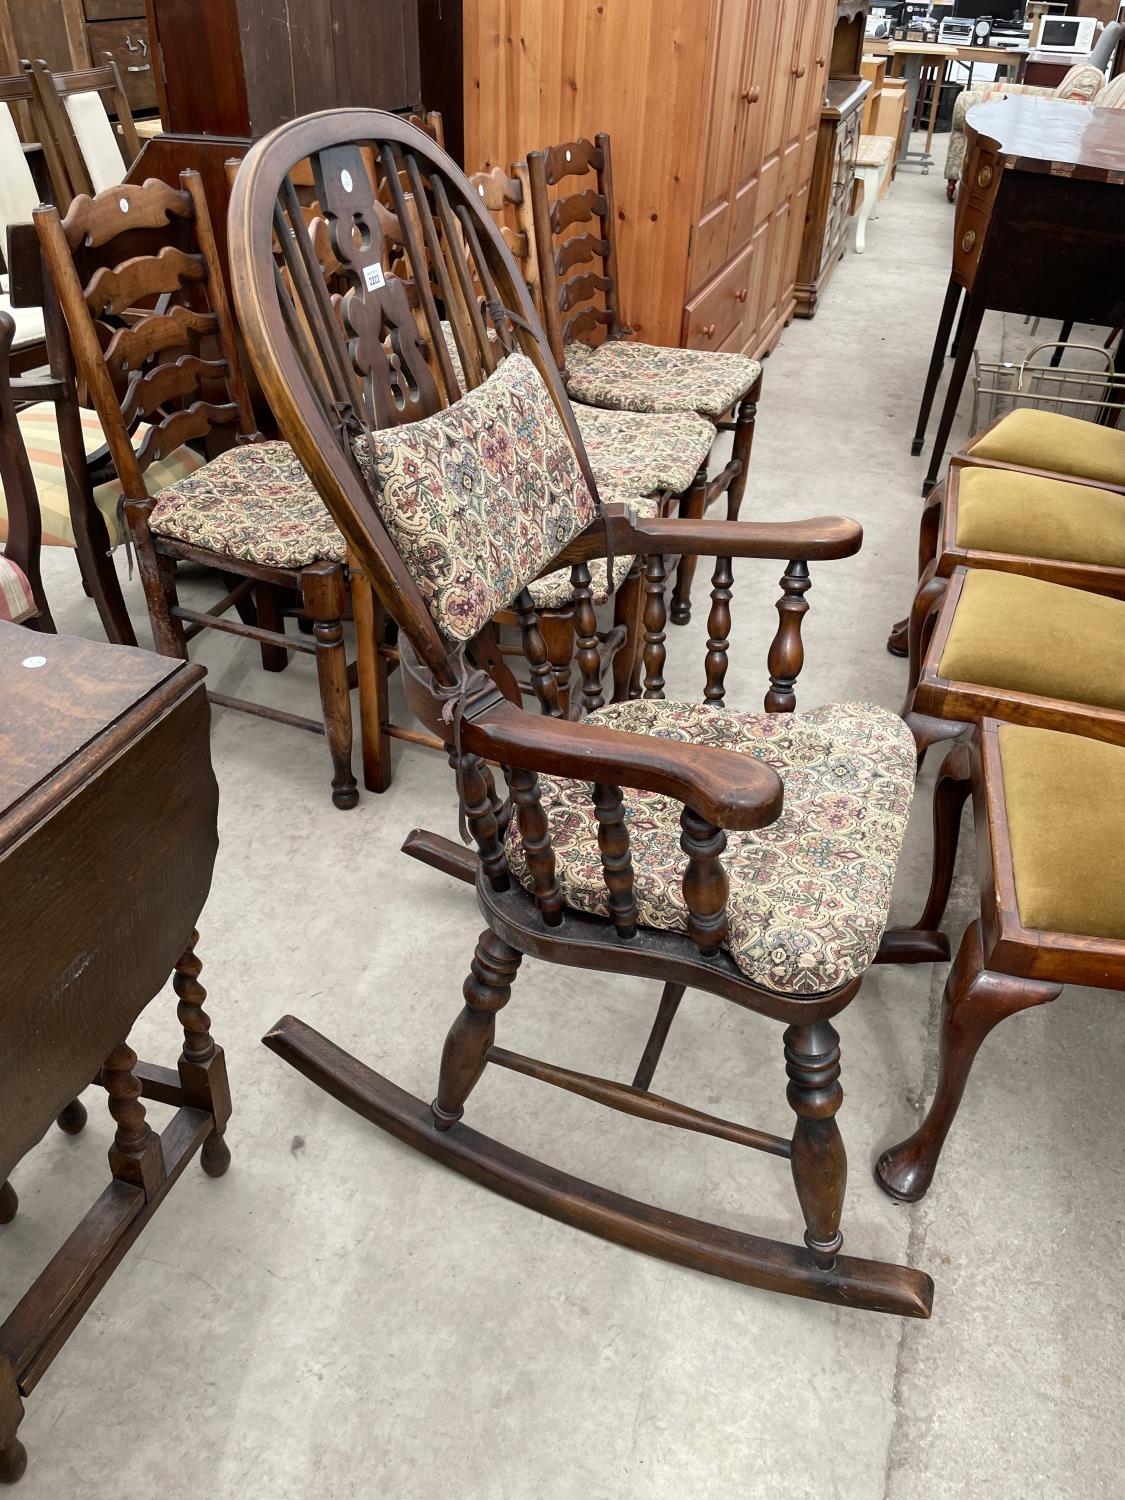 A REPRODUCTION WINDSOR ROCKING CHAIR WITH TURNED UPRIGHTS, BEARING LABEL 'R.E.FORSTER, WARRINGTON' - Image 4 of 5